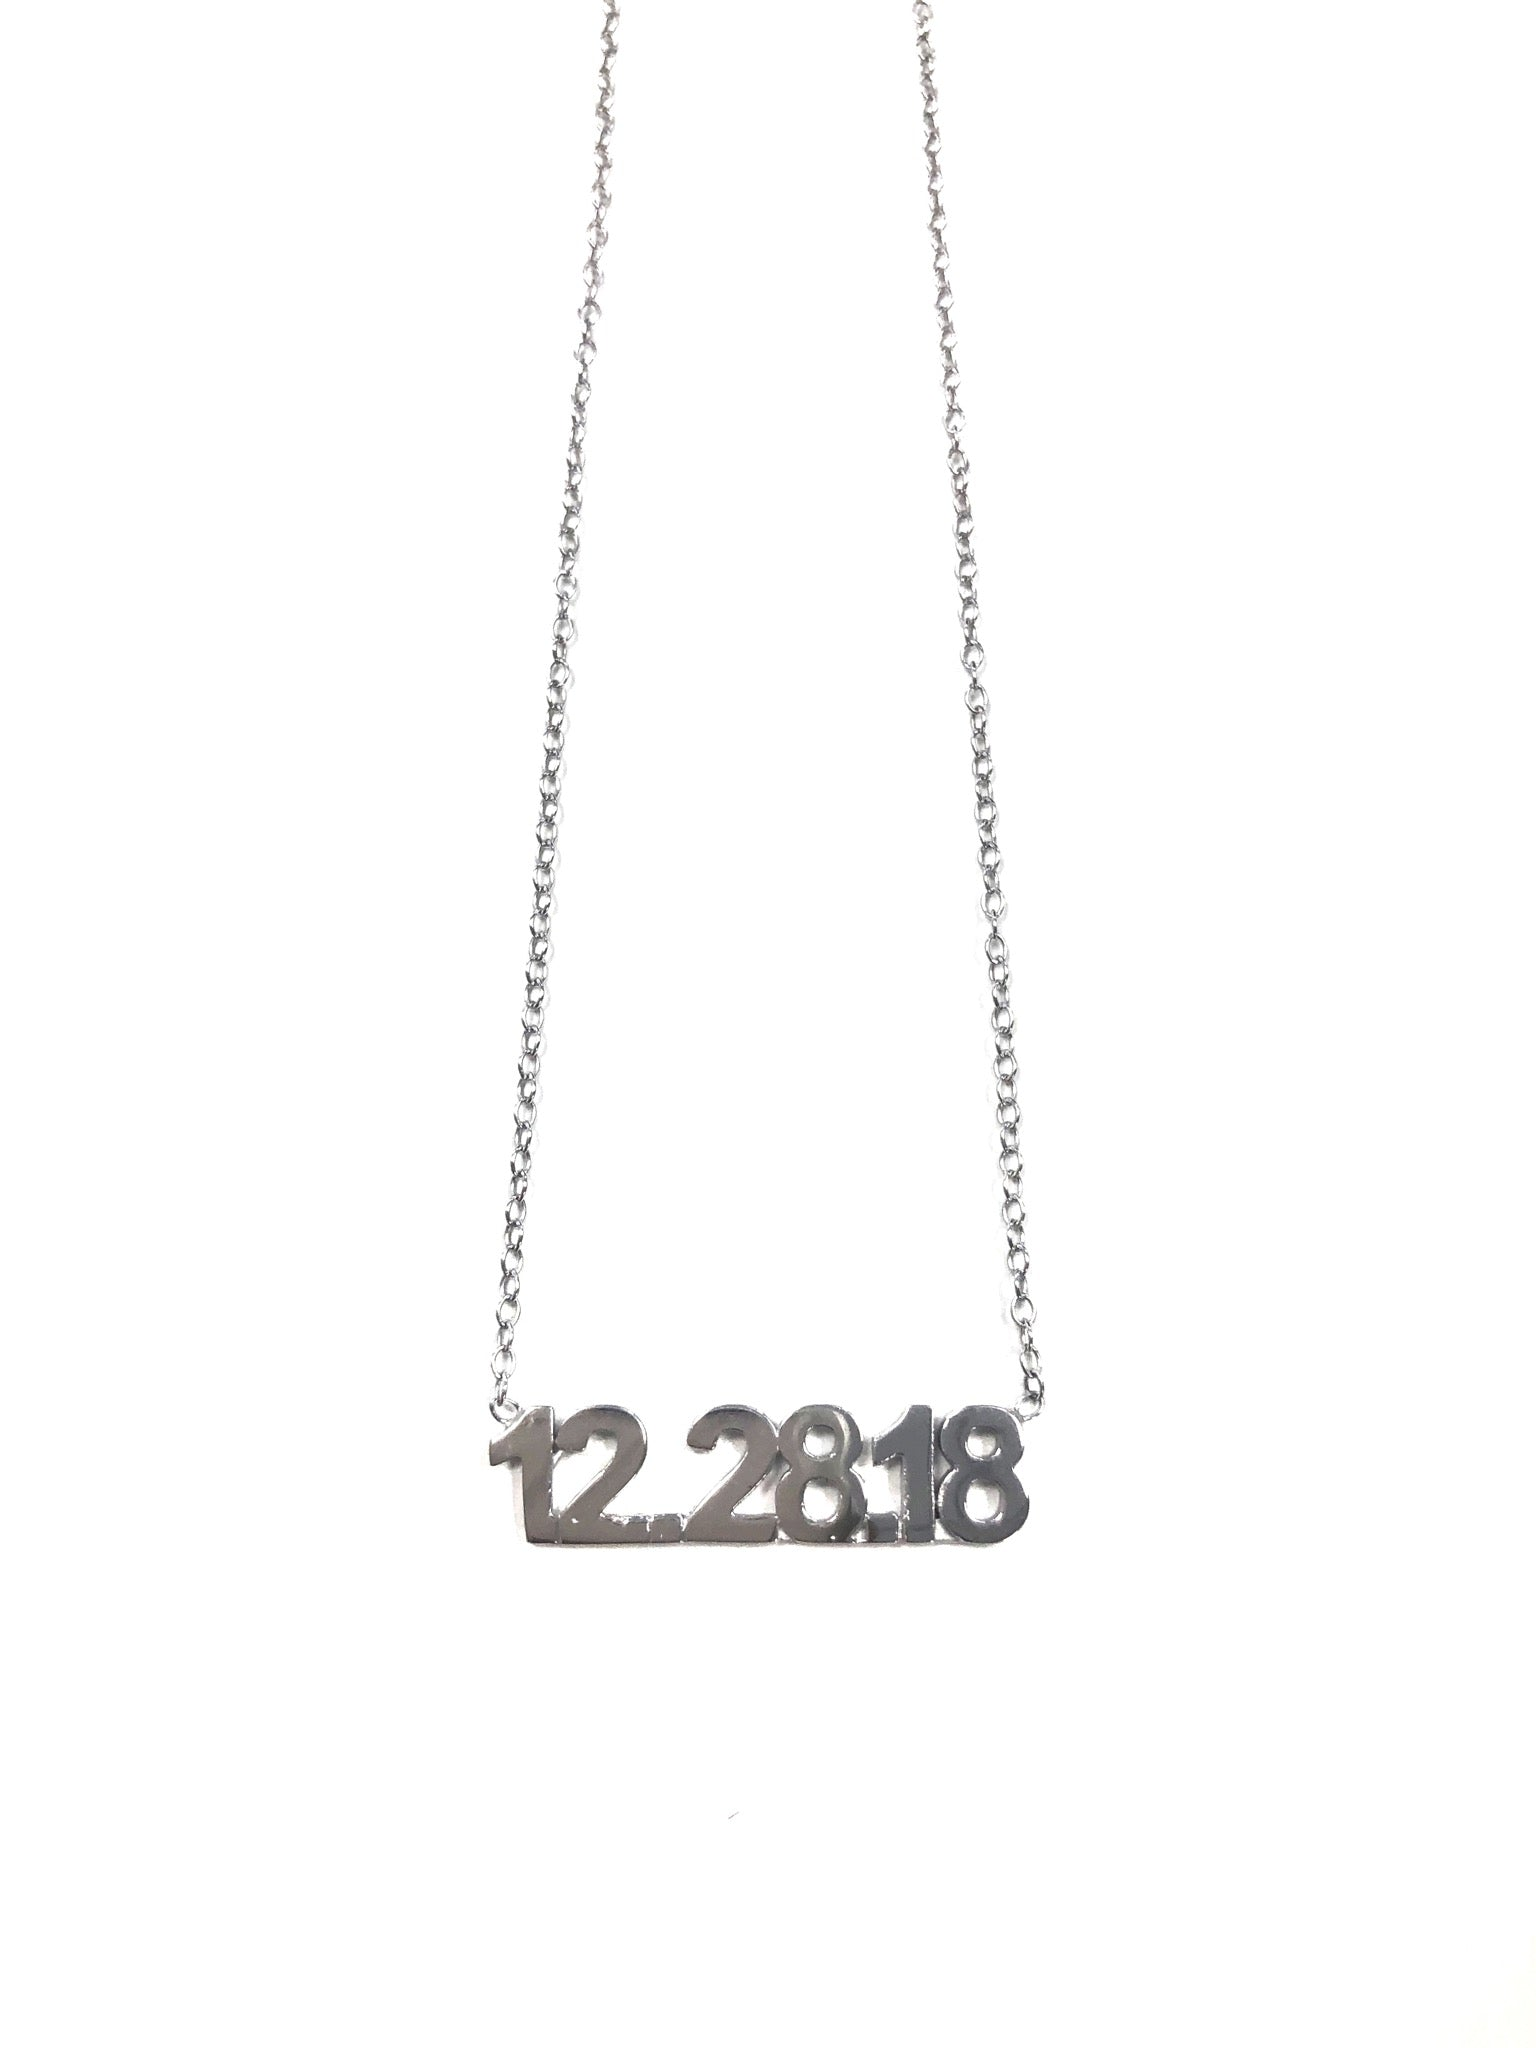 10K Gold Date Necklace